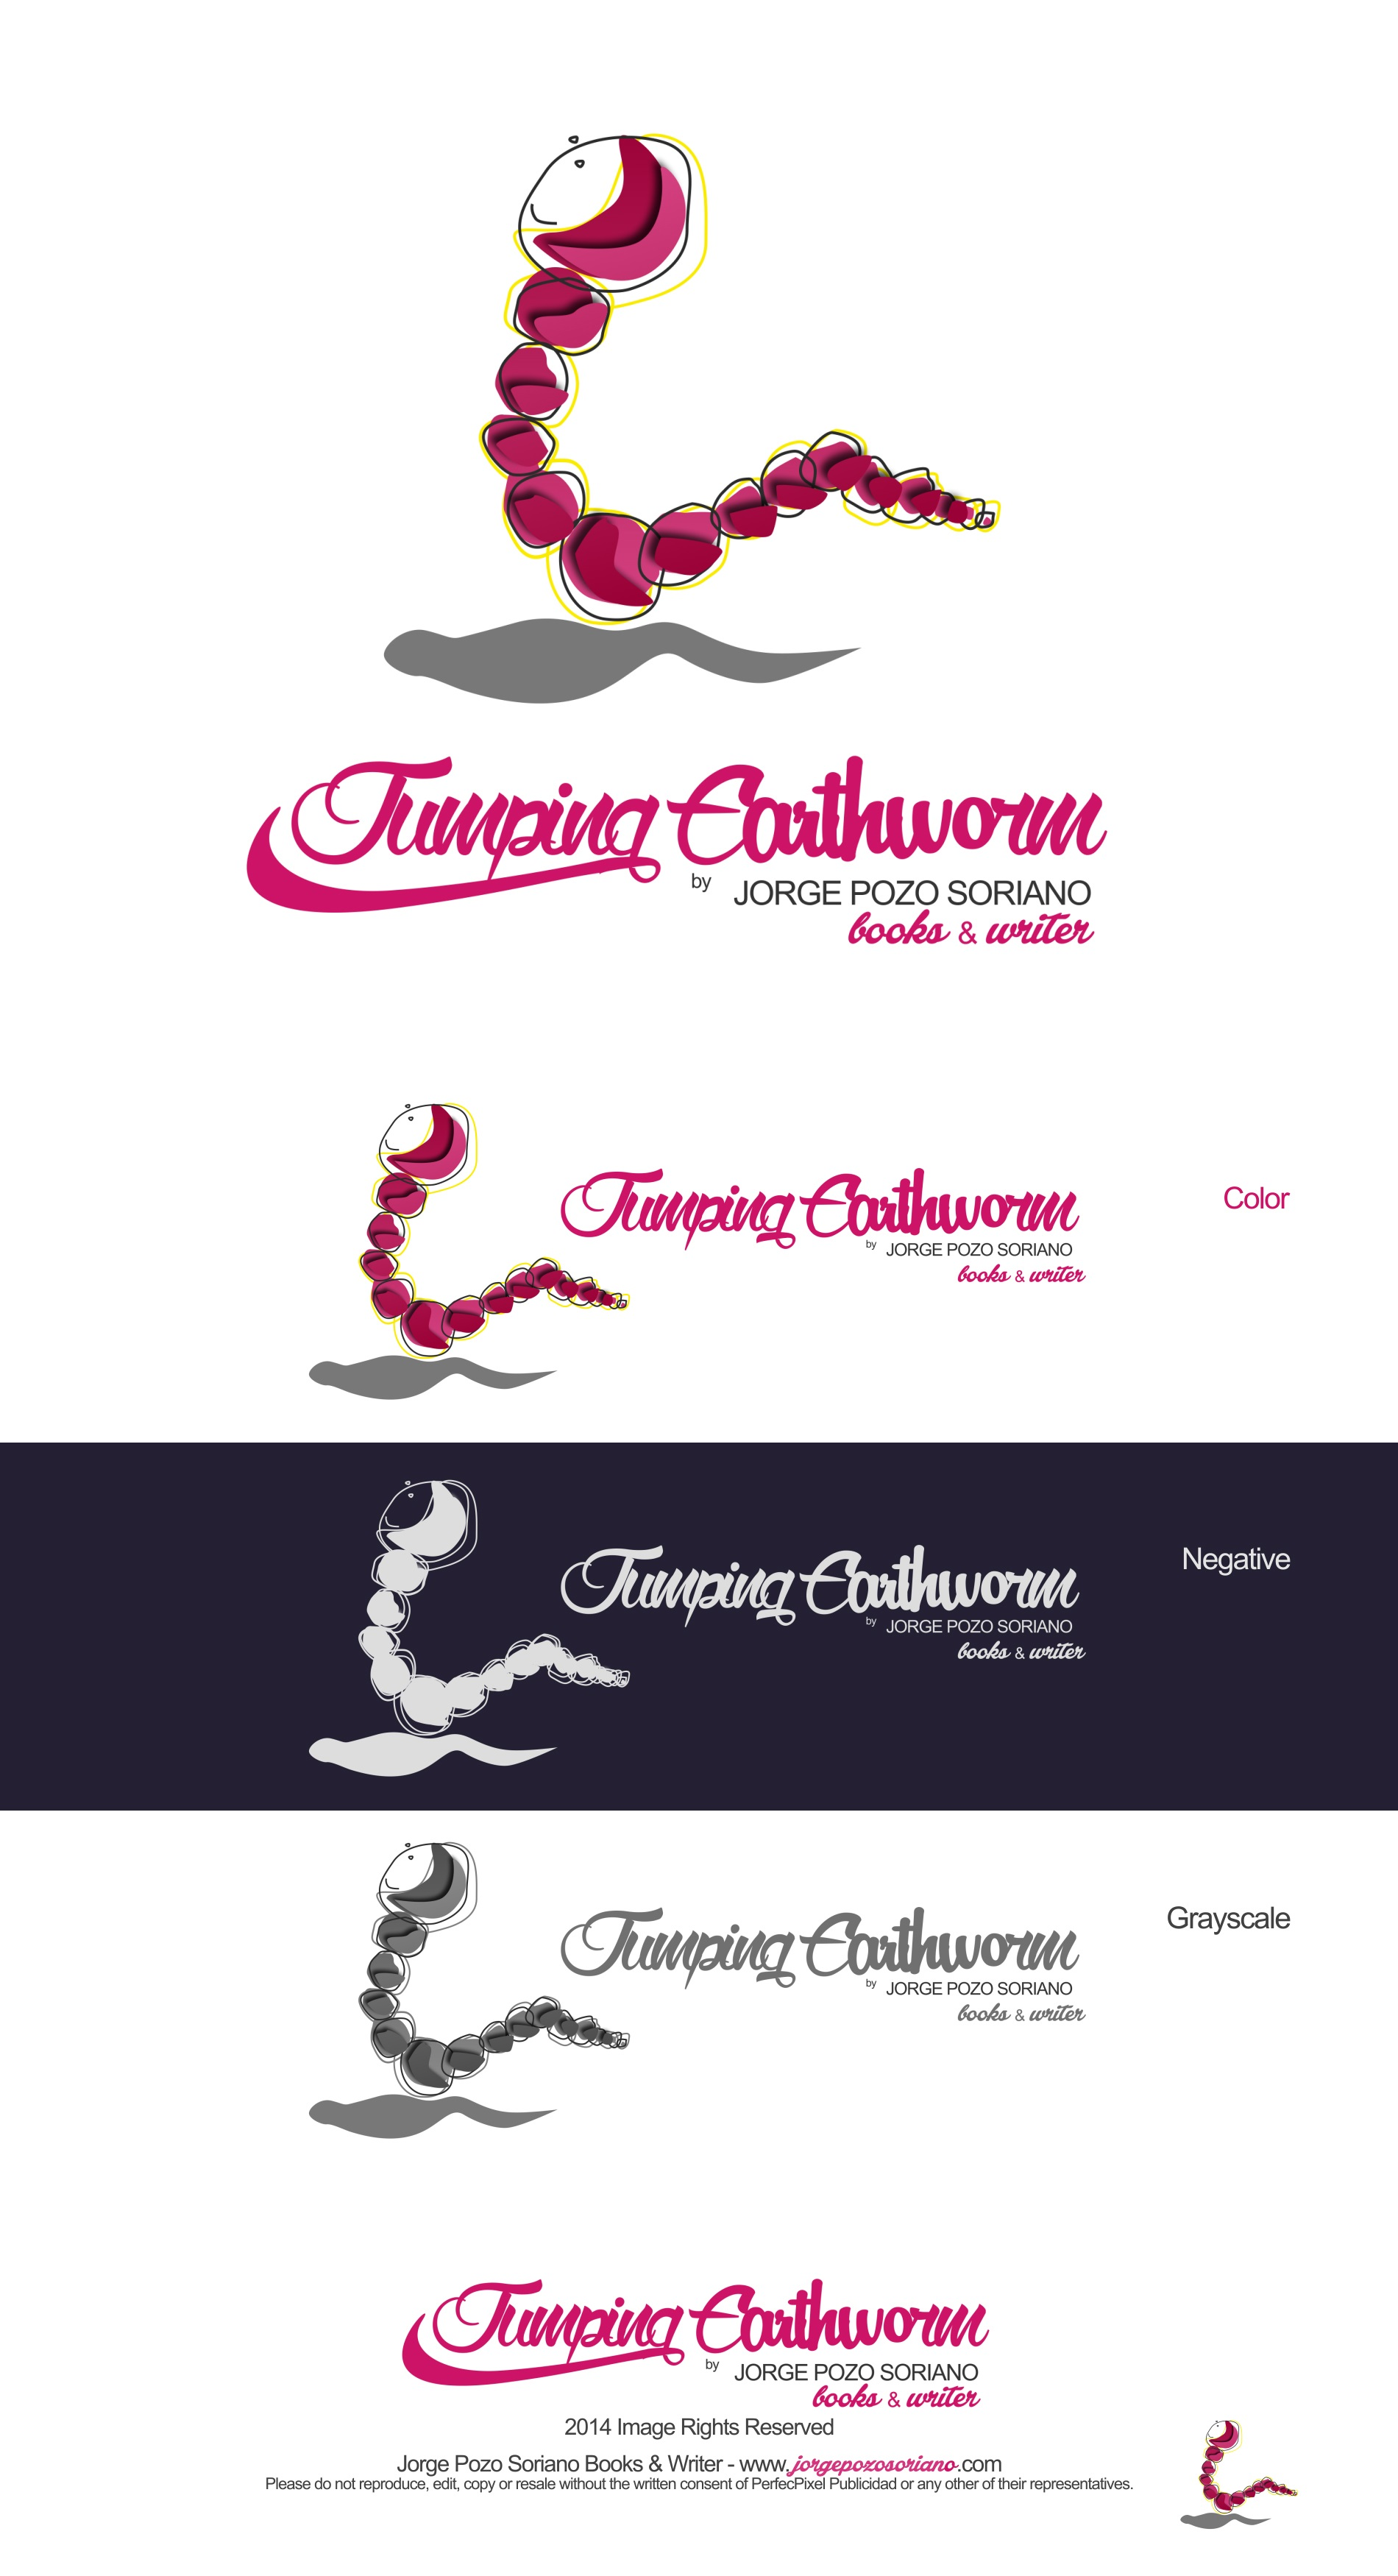 Jumper Earthworm by Jorge Pozo Soriano (Books & Writer) - Website and Corporate Image Design